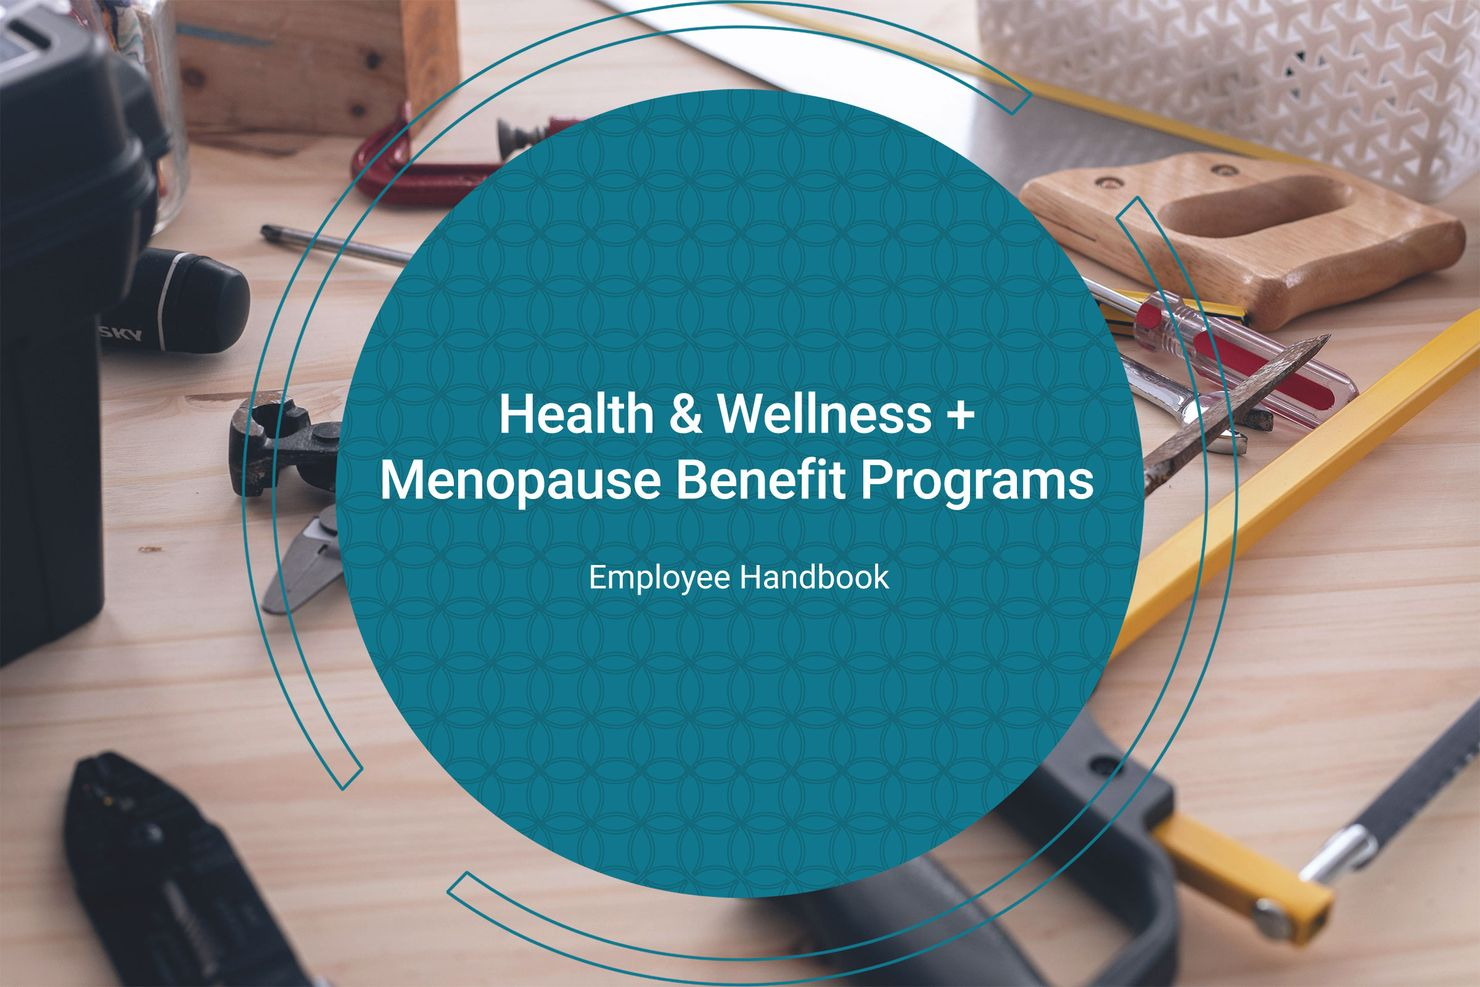 """a teal circle containing the text """"health & wellness + menopause benefit programs"""" overlays a photo of a wooden workbench covered in tools"""